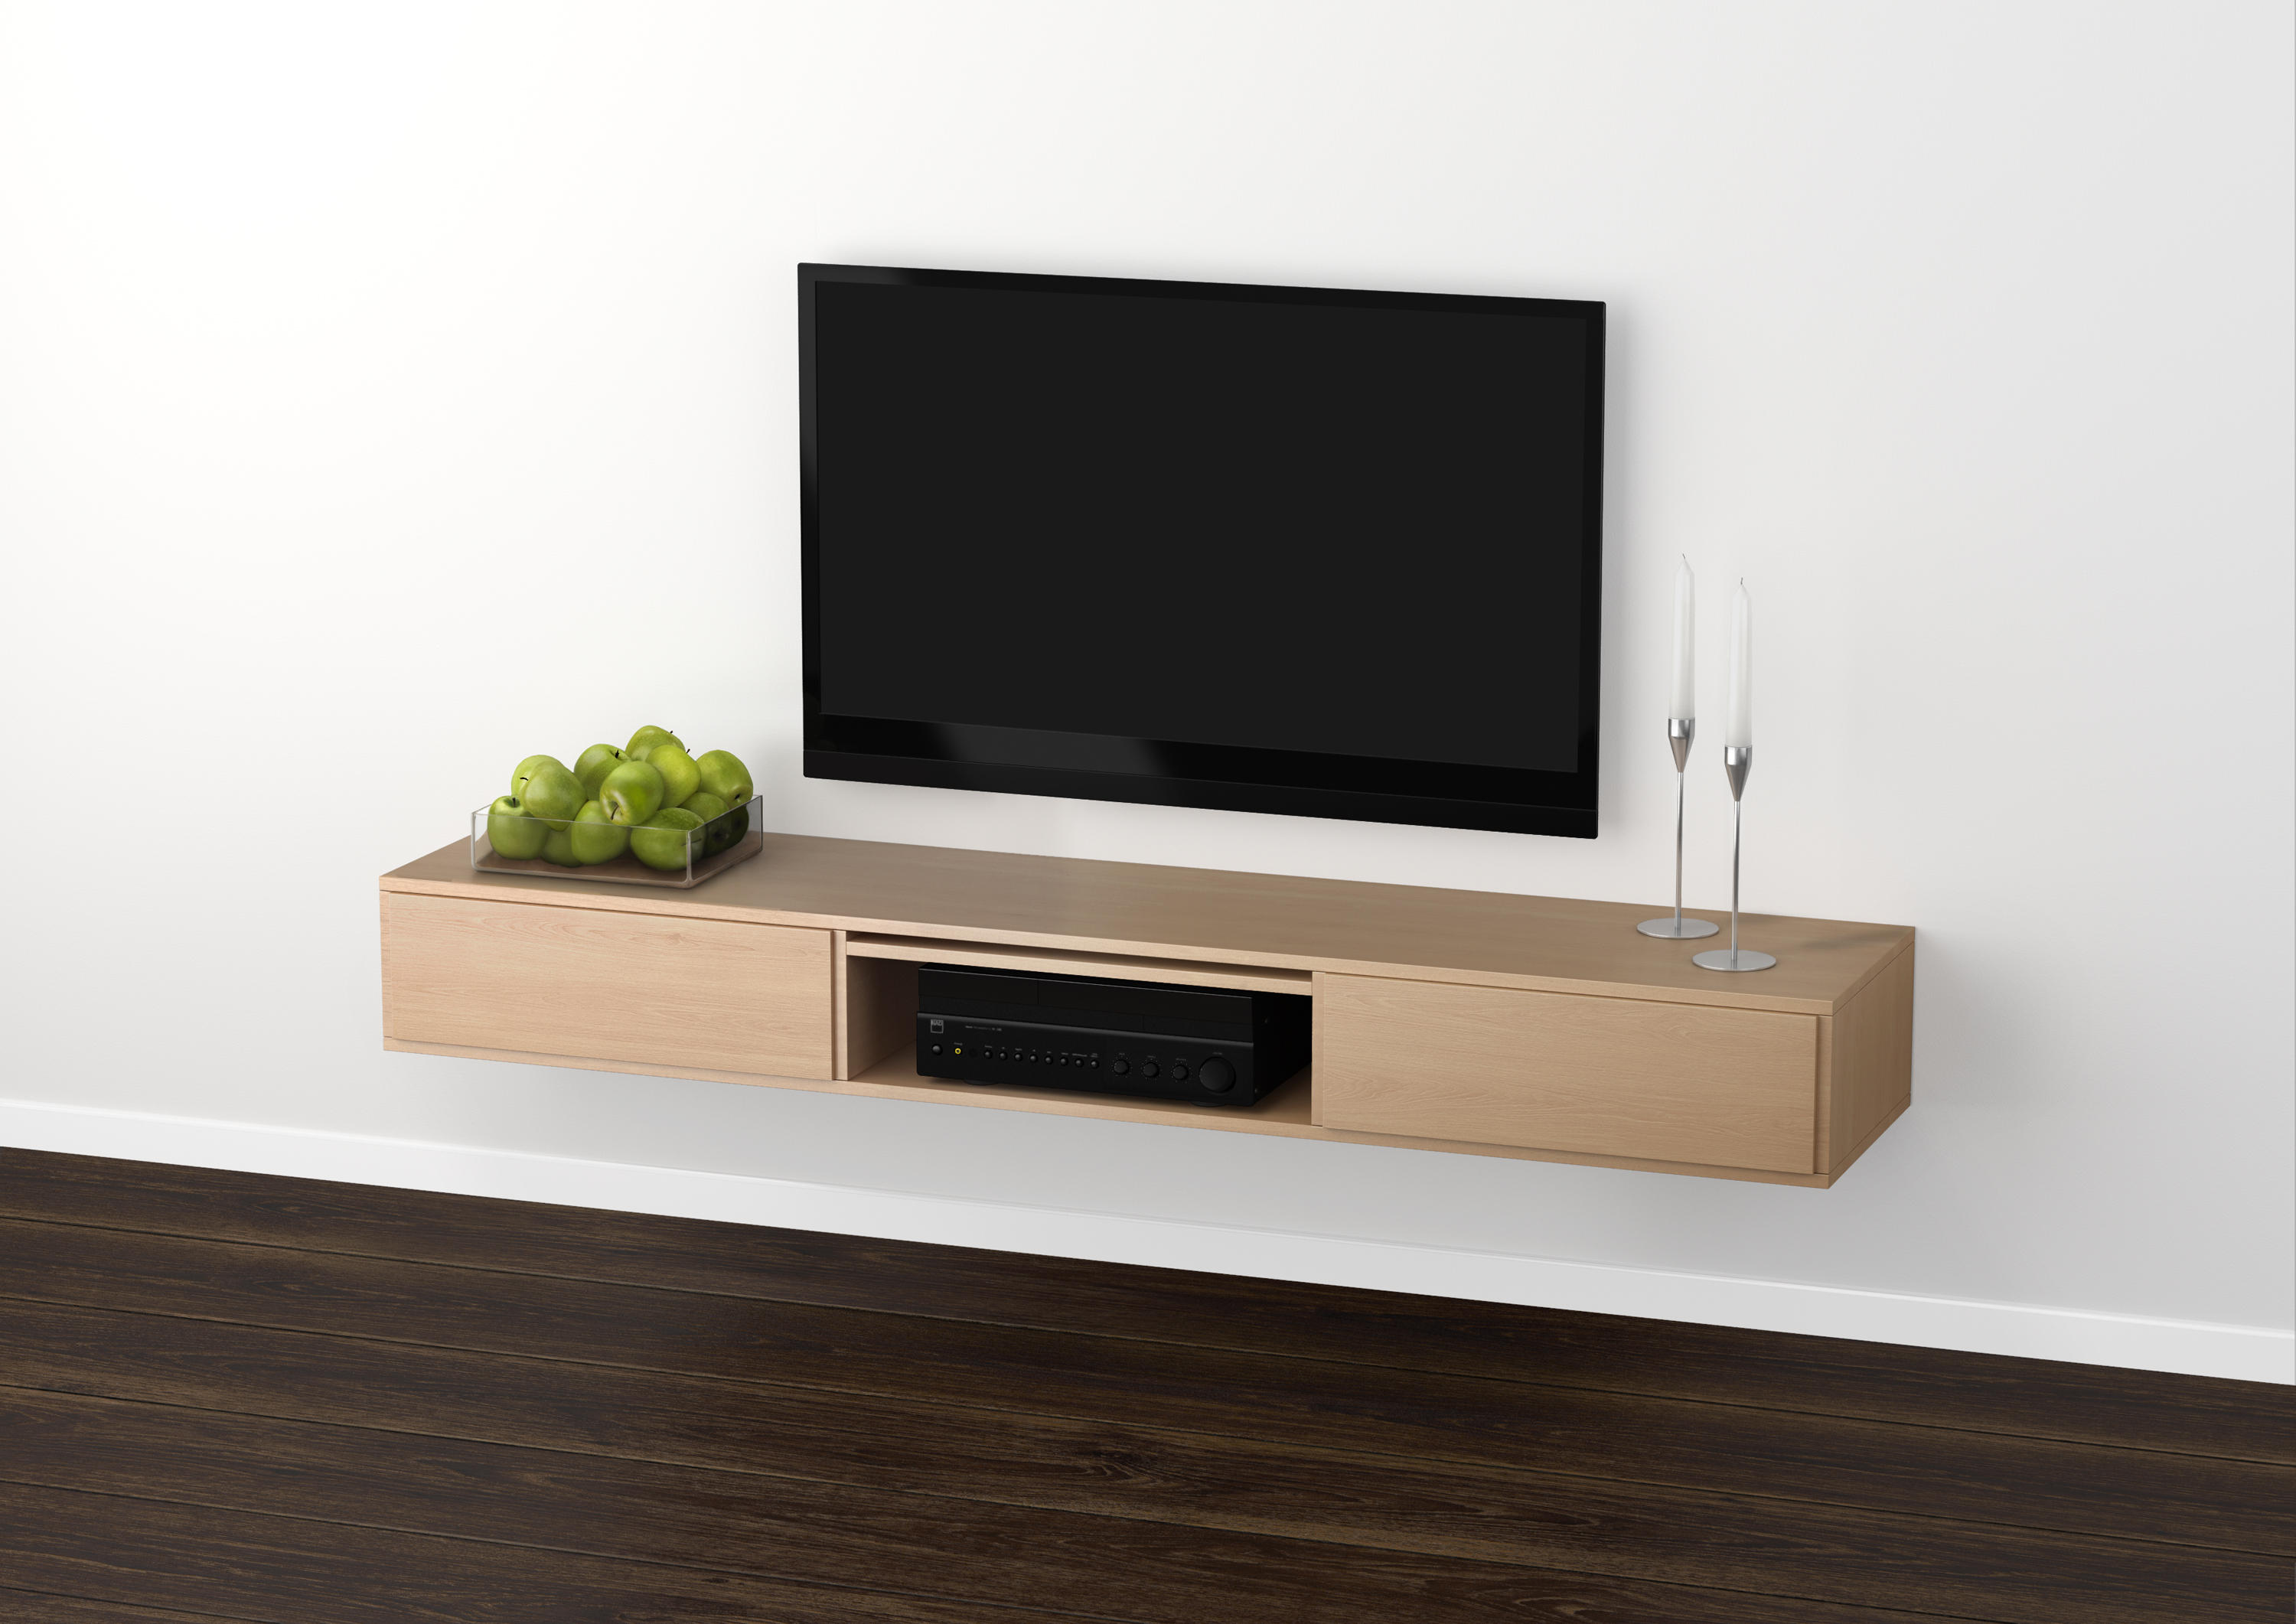 KLIM TV Cabinet M330 By